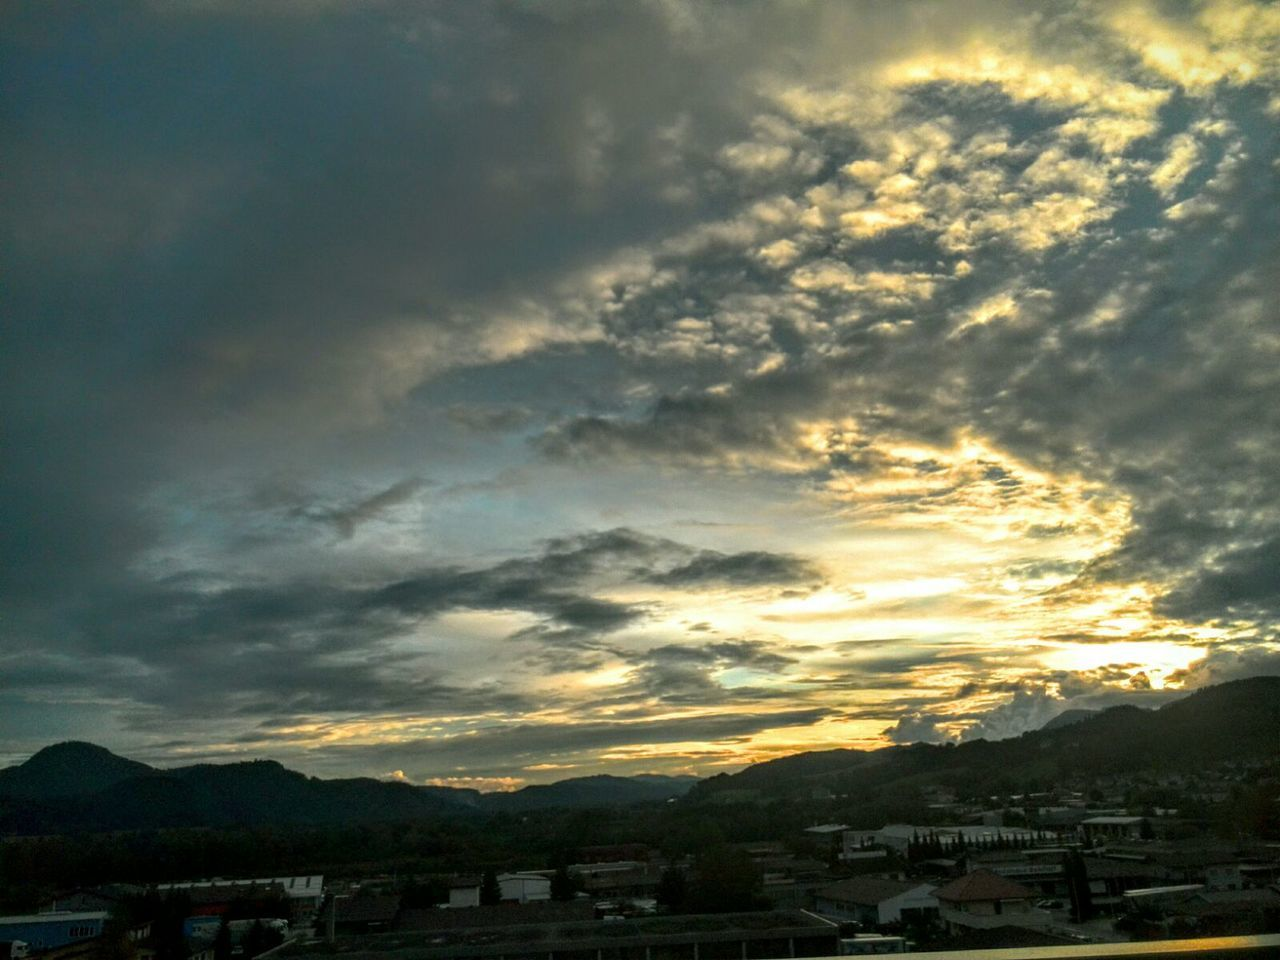 sky, cloud - sky, built structure, building exterior, mountain, architecture, sunset, beauty in nature, nature, house, outdoors, no people, scenics, tranquility, city, day